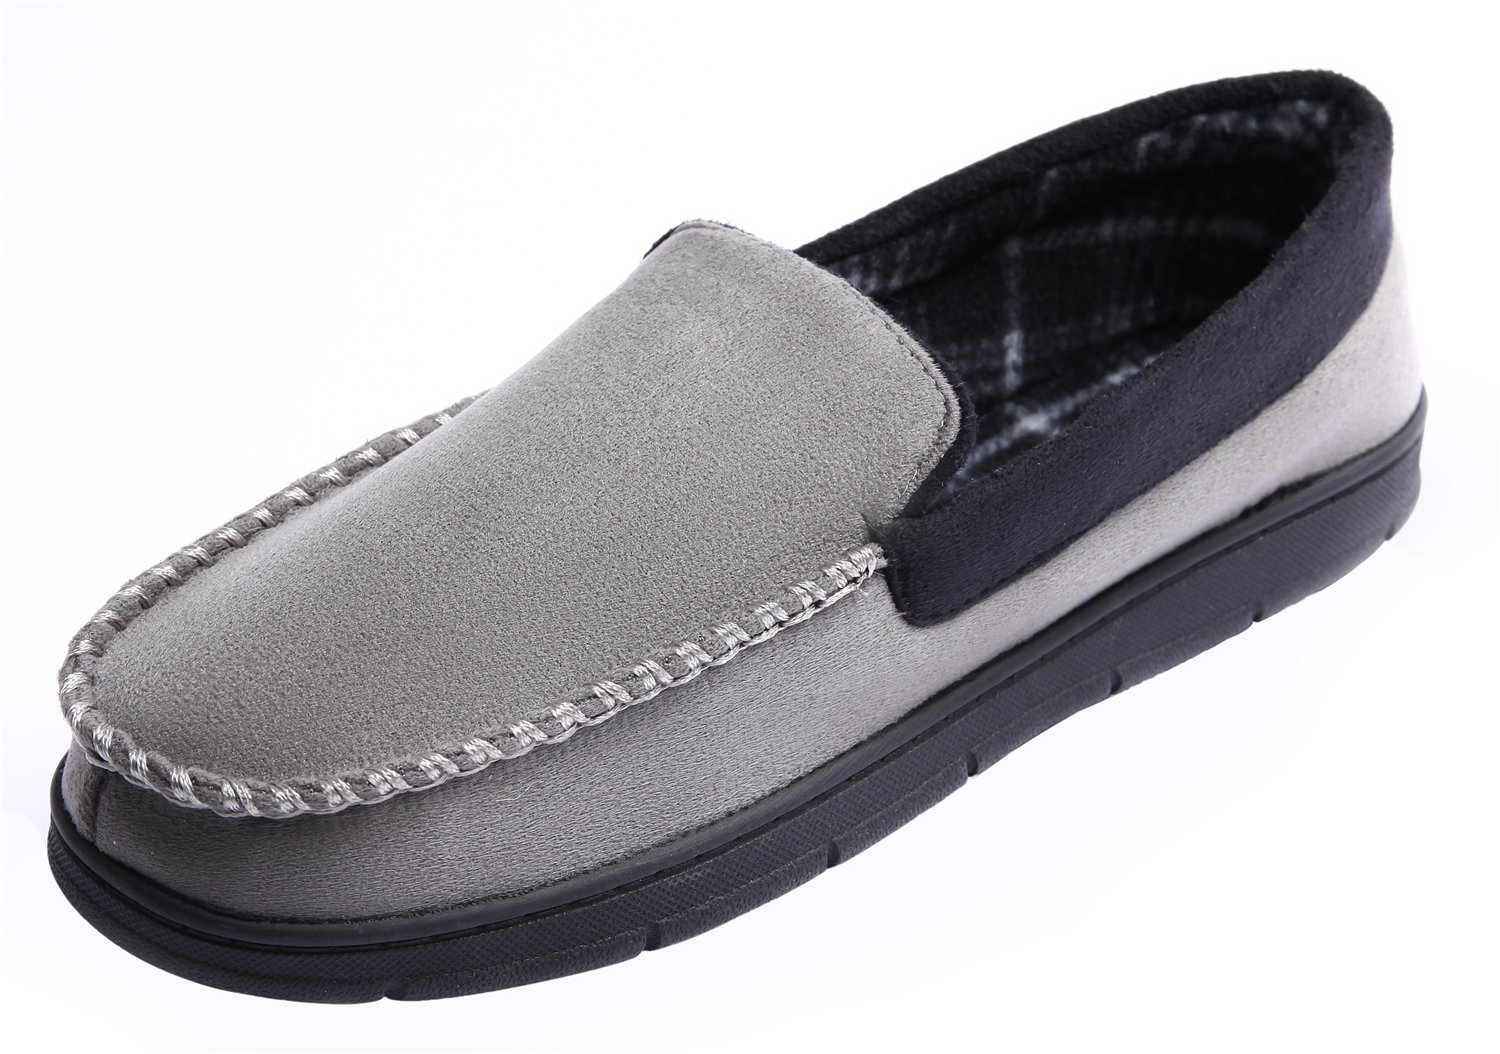 CareBey Men's Comfortable Flats Indoor Outdoor Moccasins Slippers Grey & Black US 11-12 M by CareBey